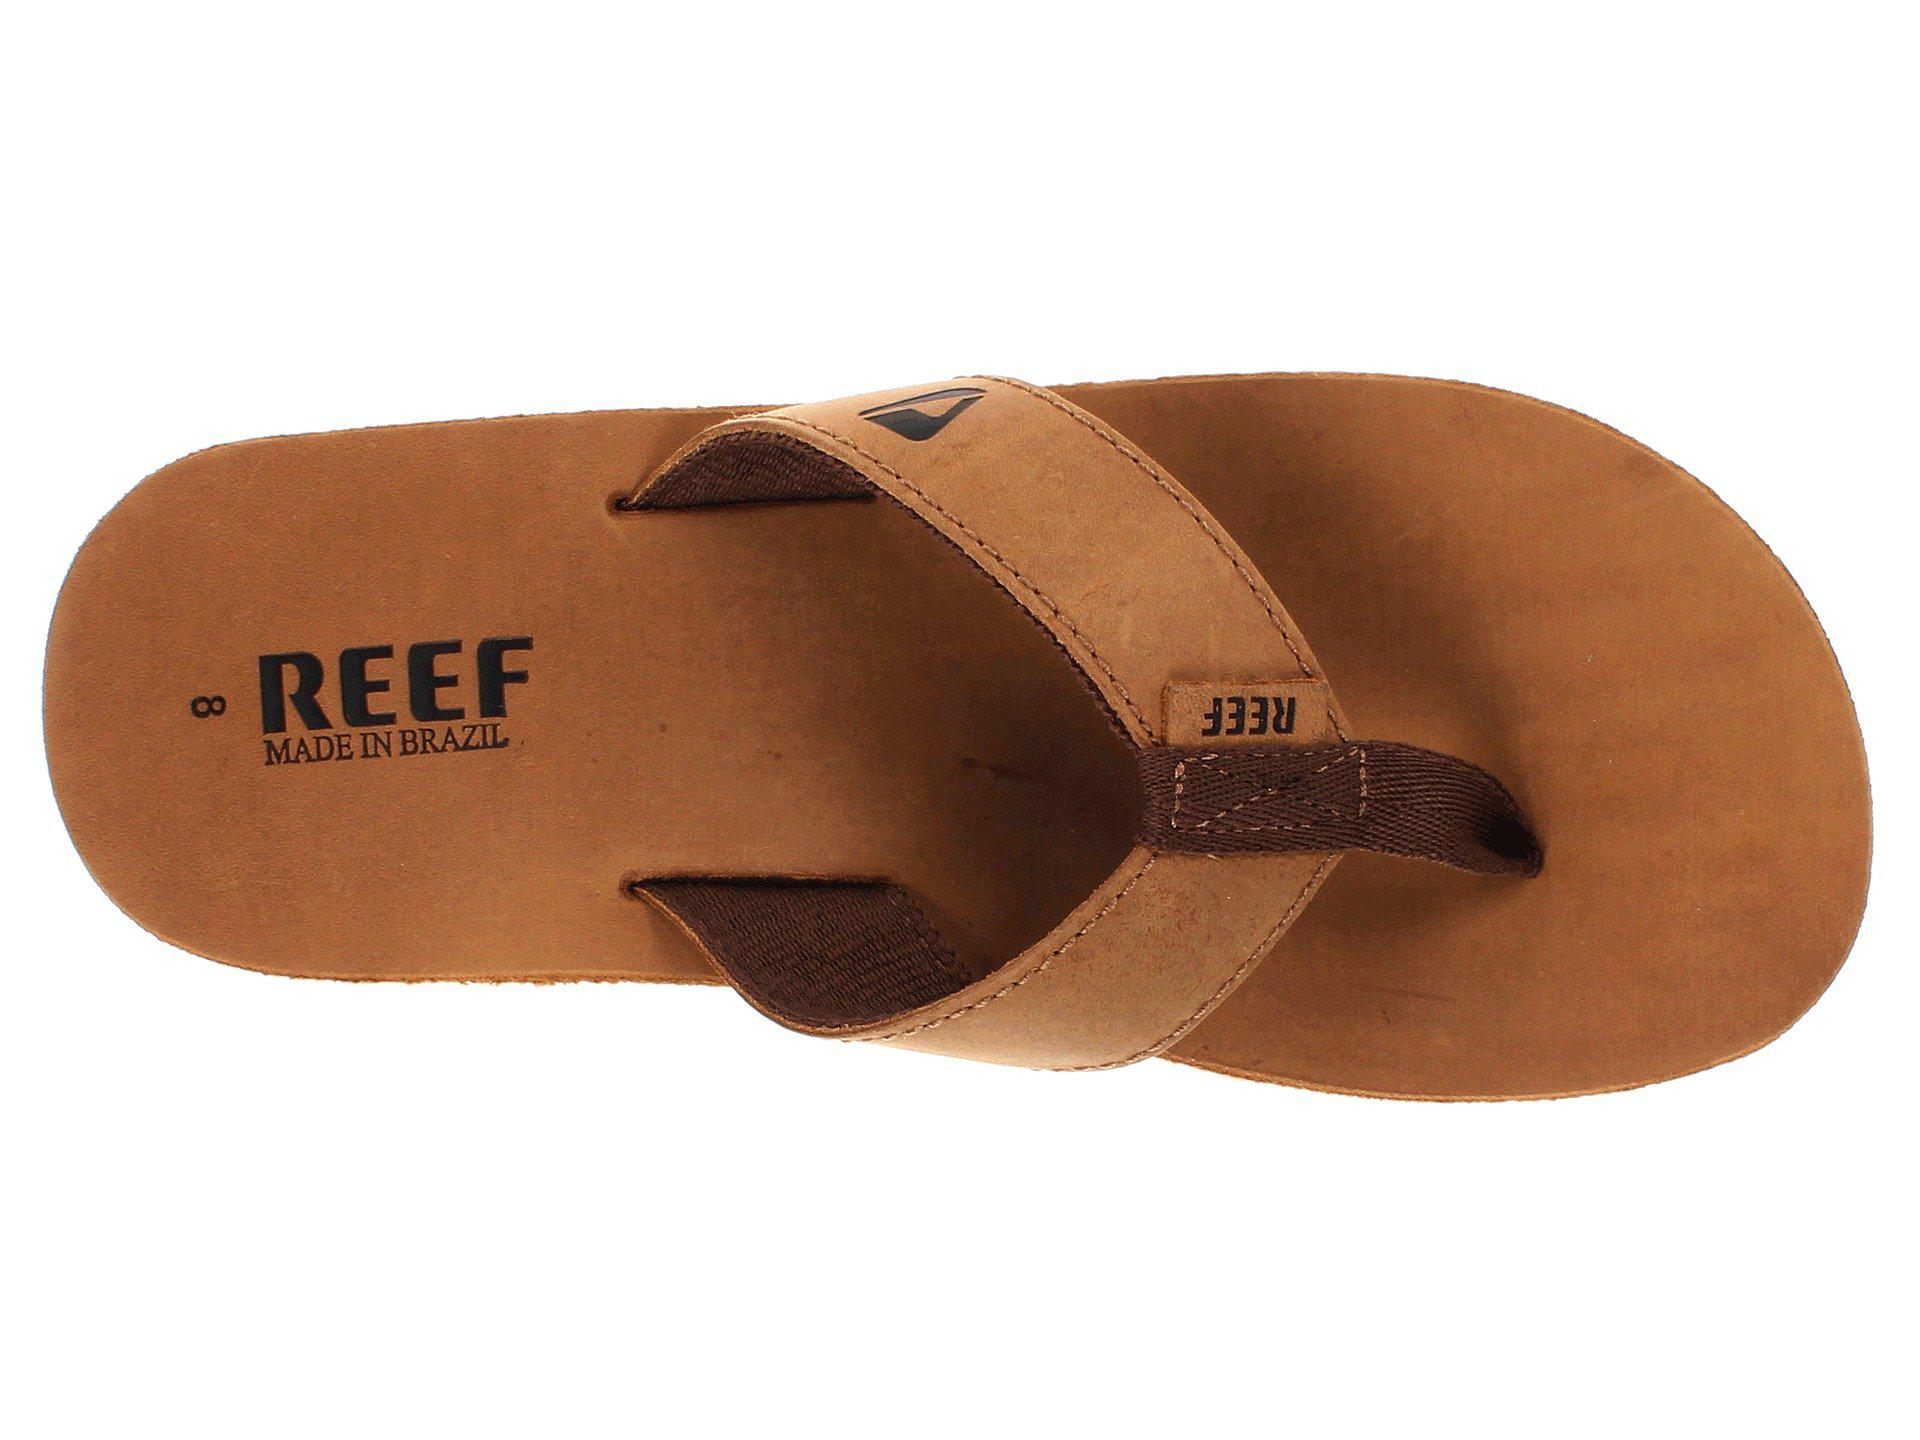 4f0a334647f0 Reef - Metallic Leather Smoothy (bronze brown) Men s Sandals for Men -  Lyst. View fullscreen